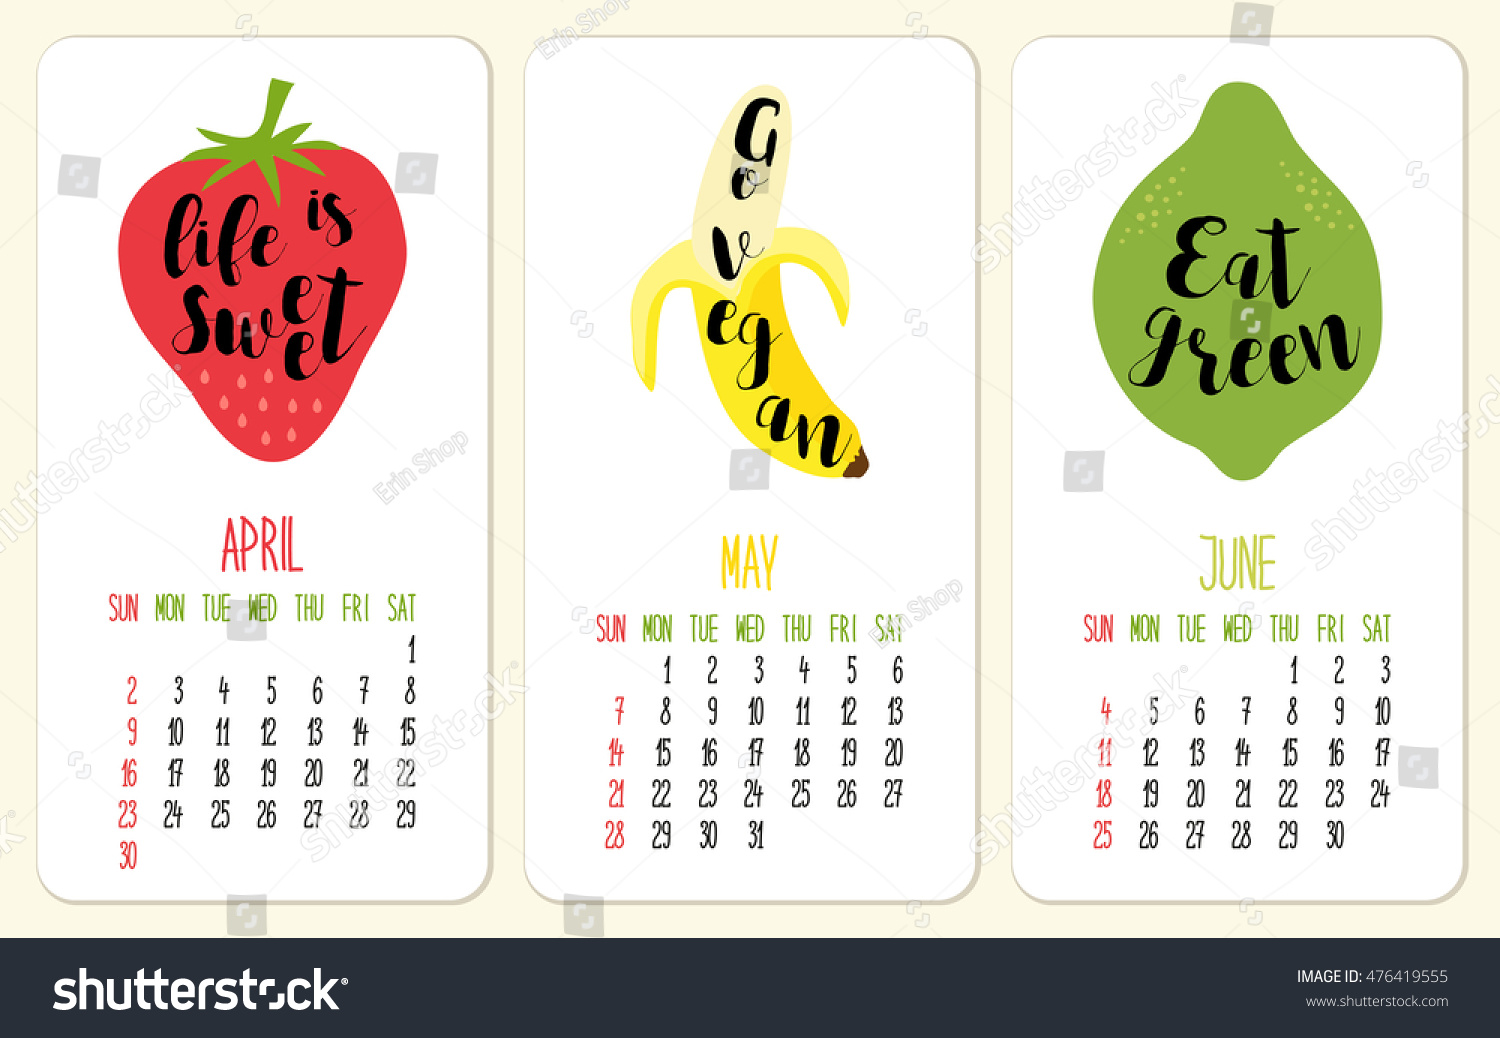 Cute 2017 Calendar Pages Fruits Lettering Stock Illustration